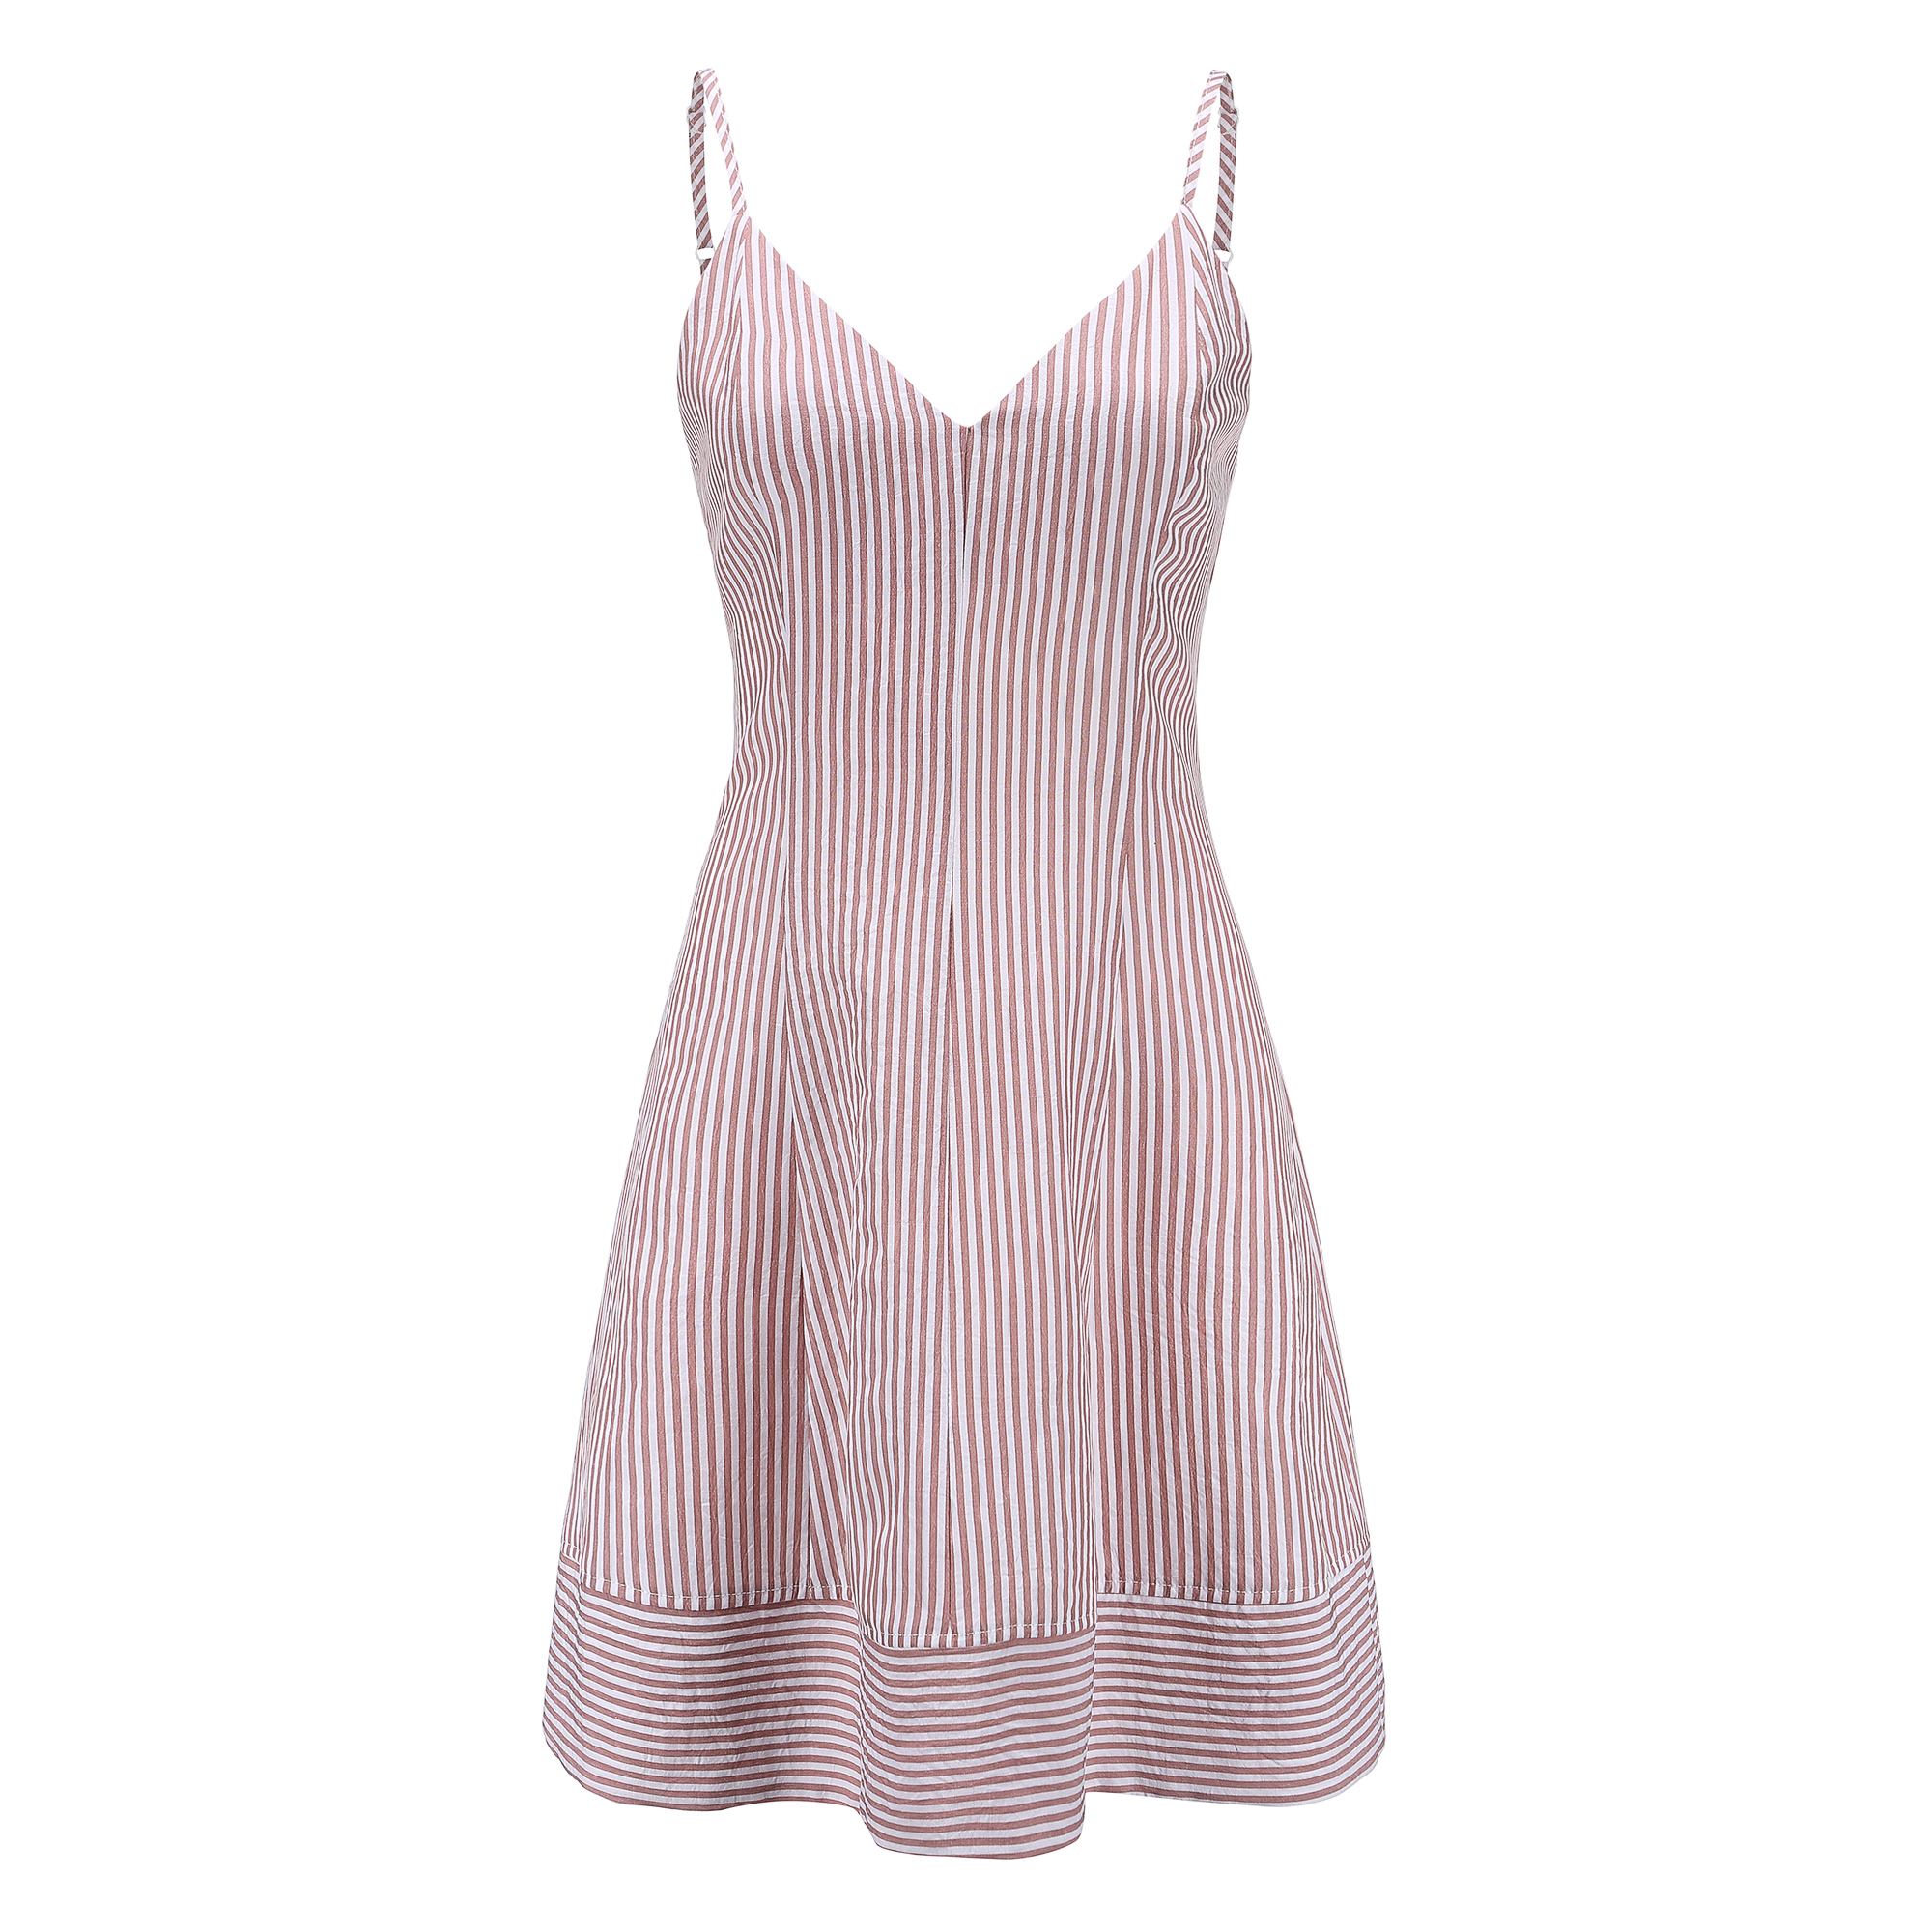 New Design Women Striped Dress A line Red Striped V Neck Collar Dresses for Female Casual Ladies Summer Sling Mini Dress 81817 in Dresses from Women 39 s Clothing